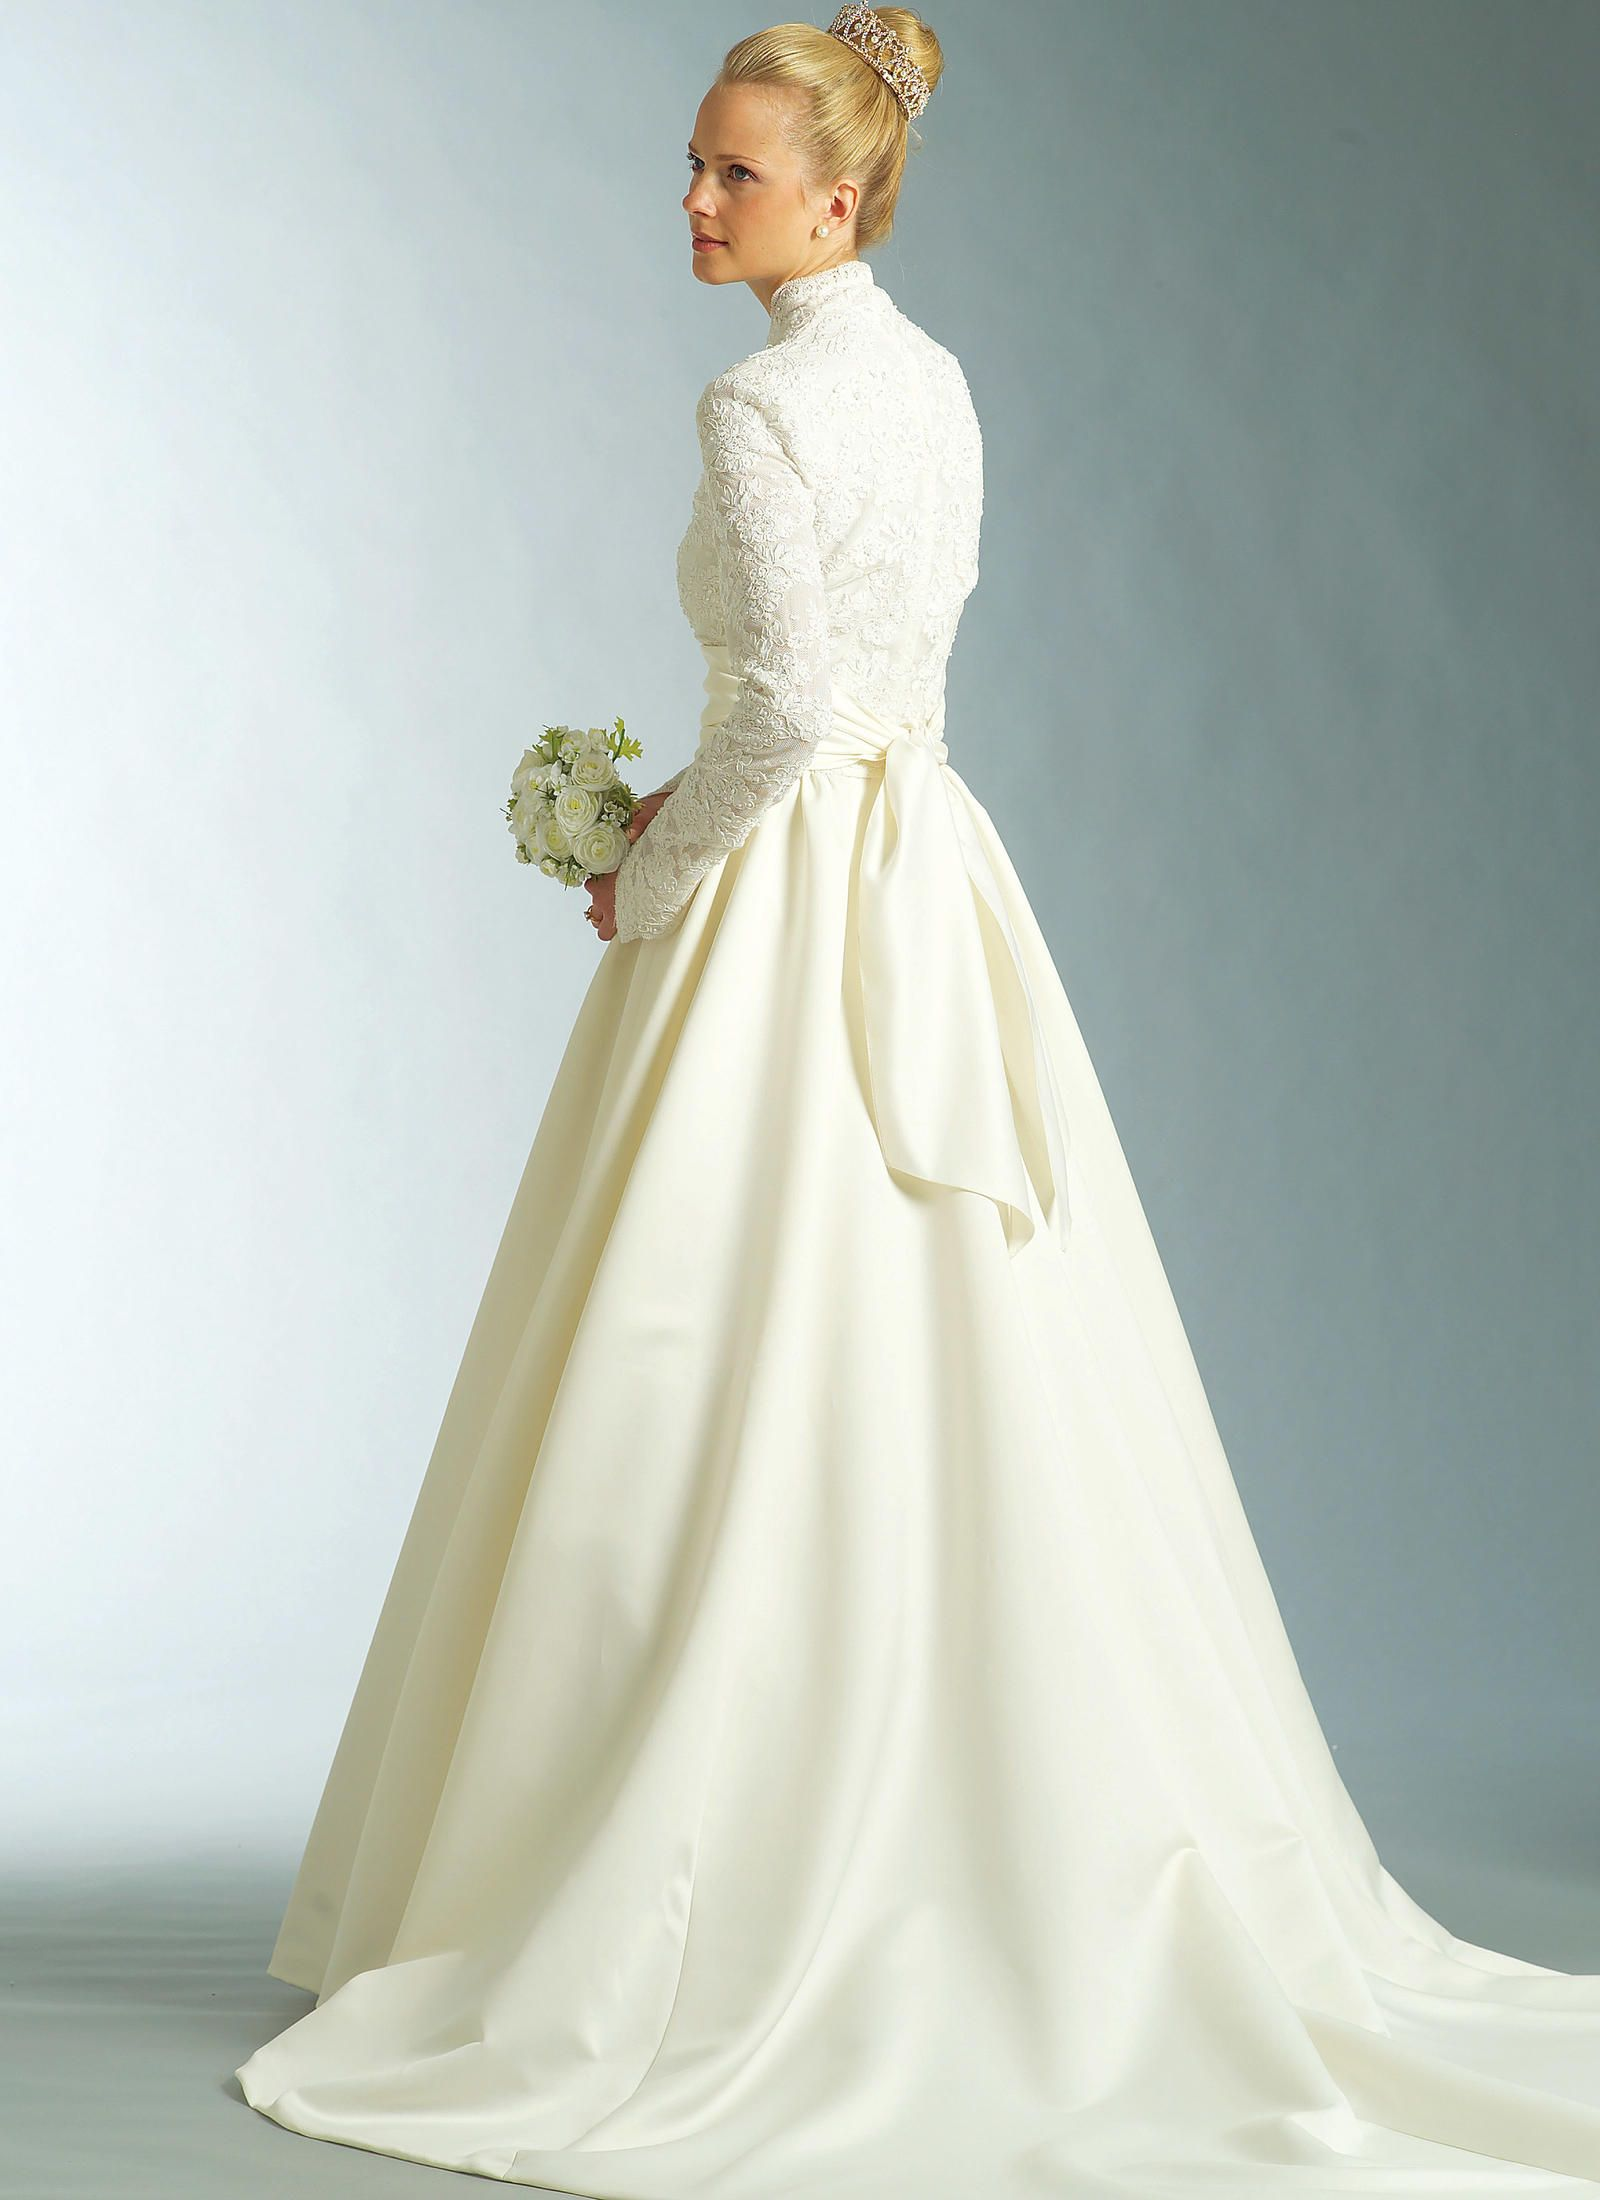 Wedding dress patterns with sleeves  V  Vogue Patterns  wedding dresses  Pinterest  Vogue